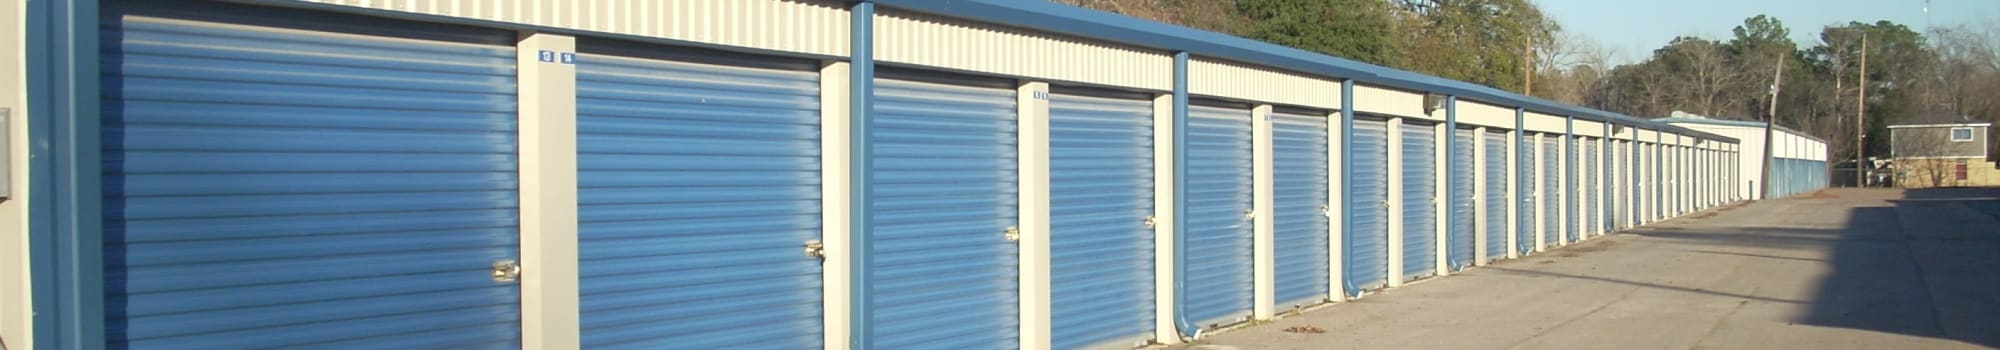 Features at AAA Alliance Self Storage in Humble, Texas